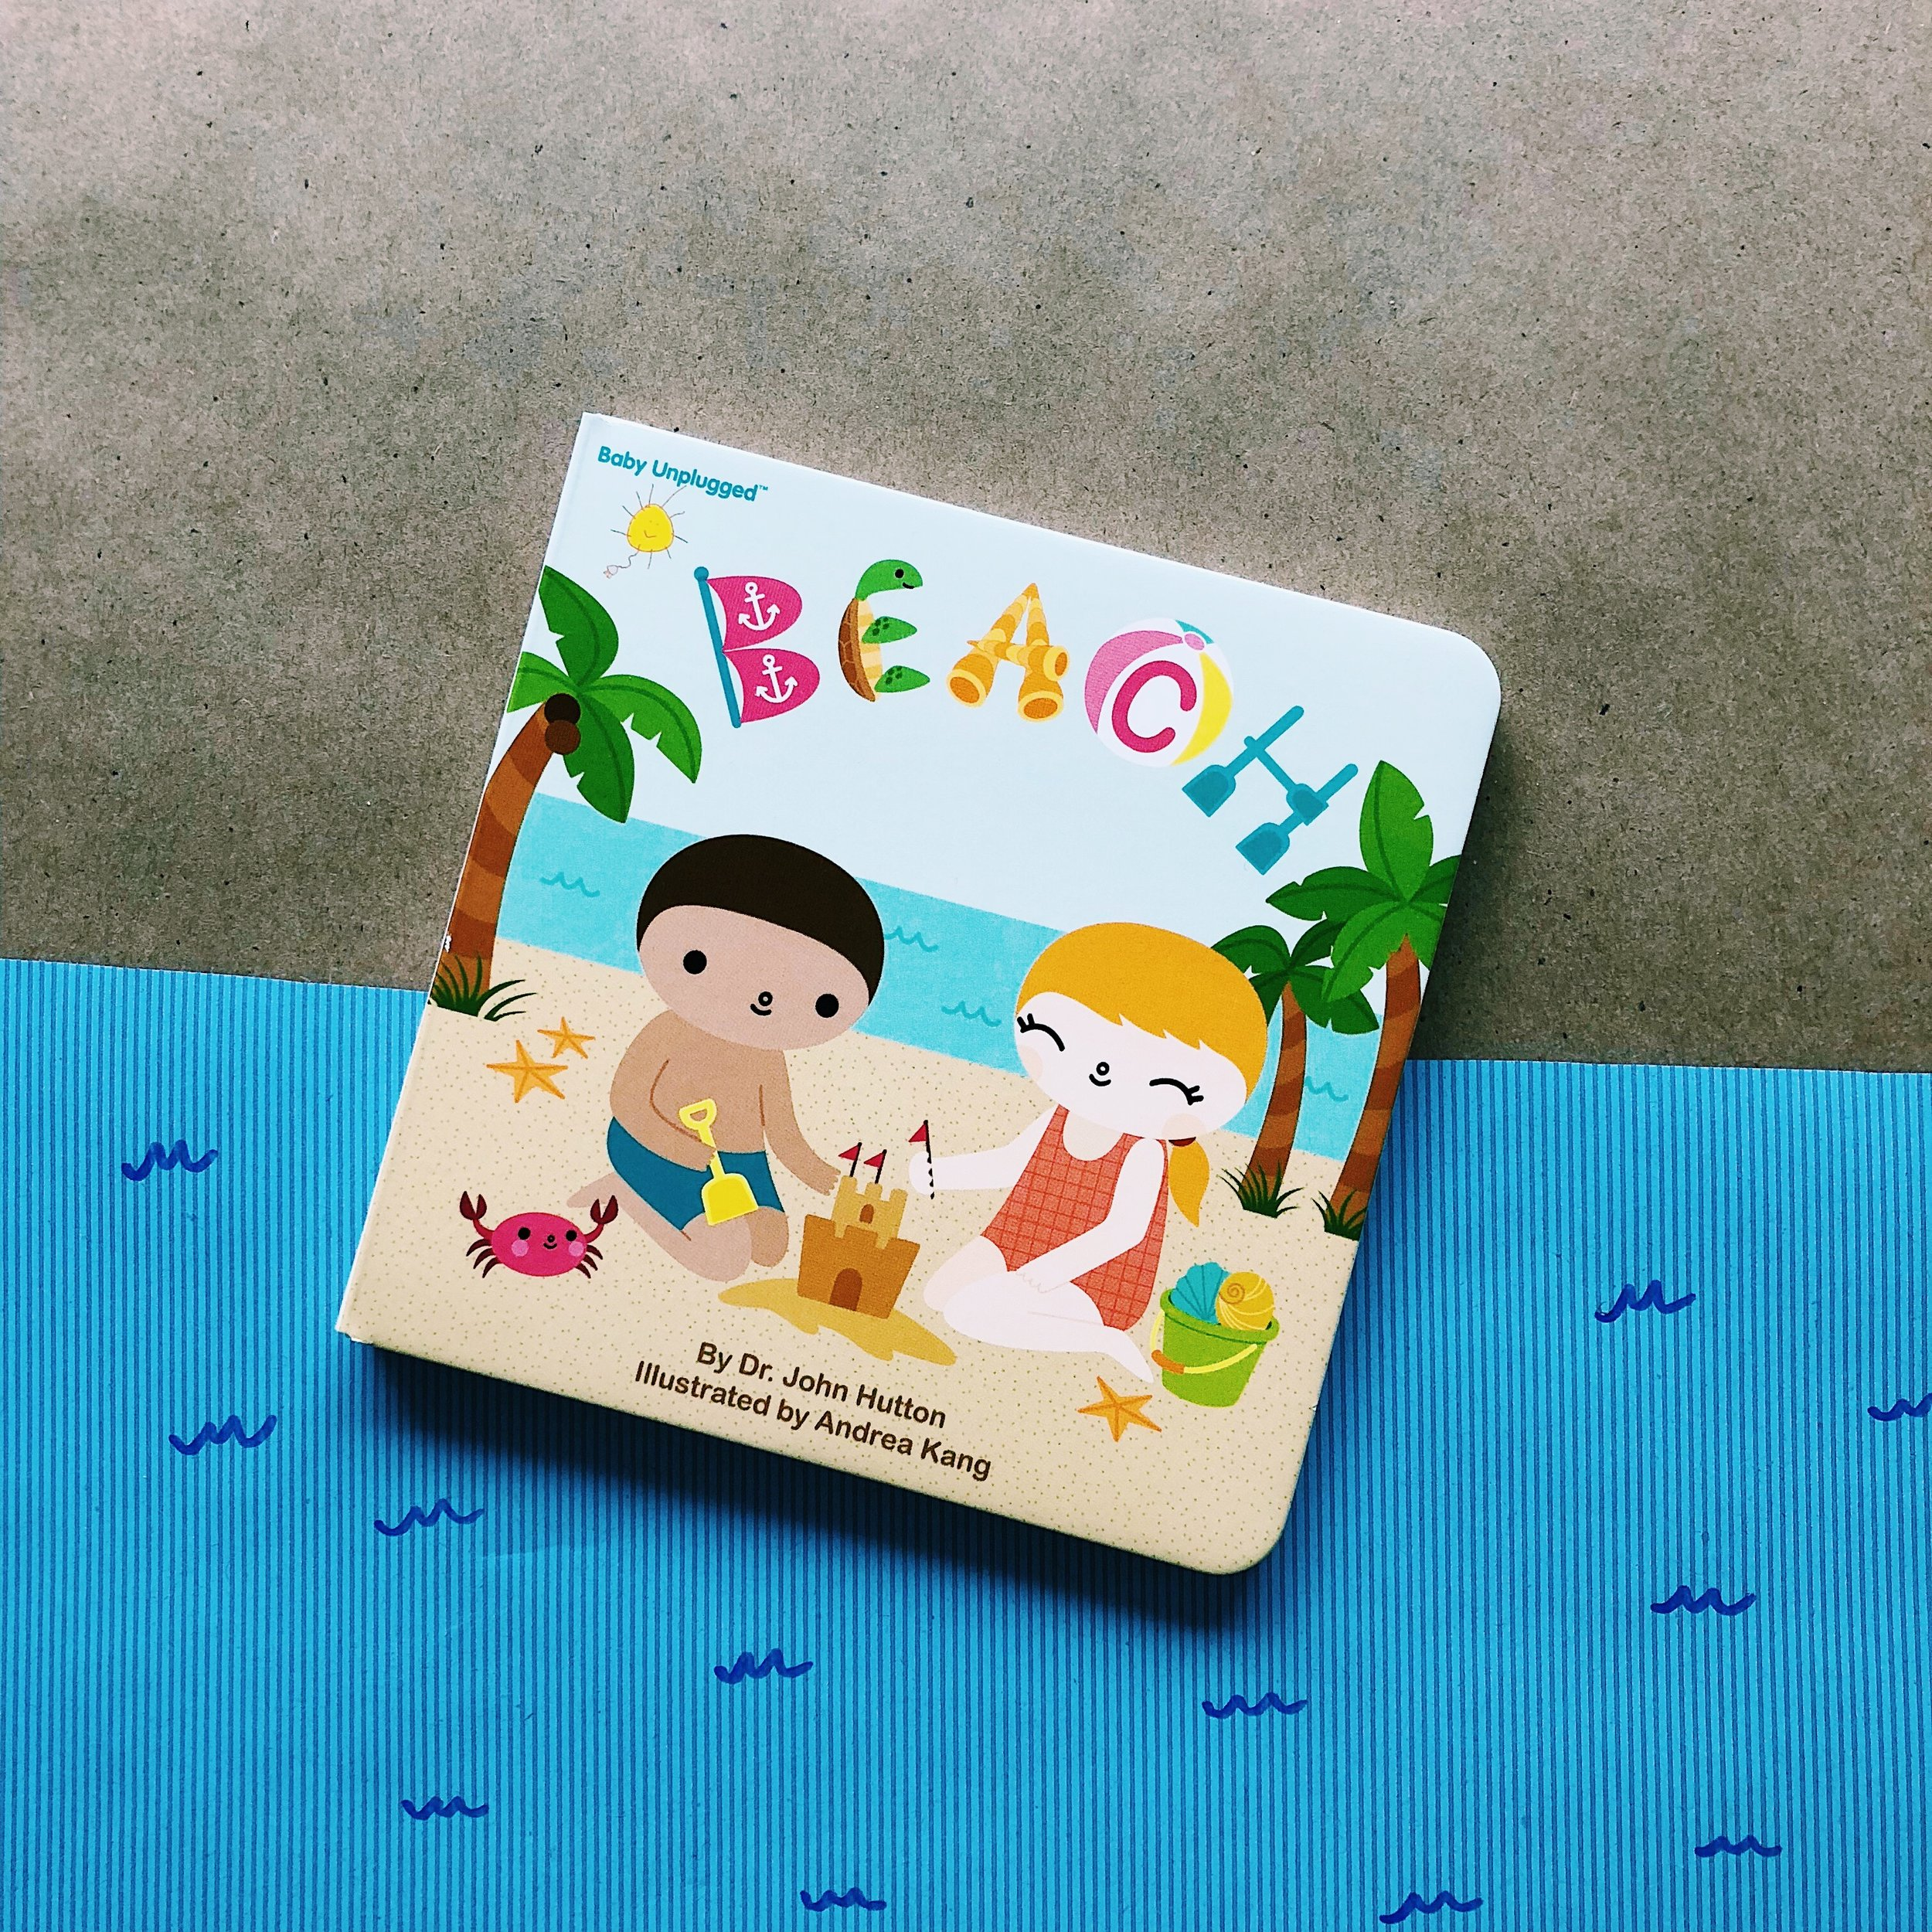 """Family, friends, a sunny day, The beach—a perfect place to play!"" -   Beach   ,  written by Dr. John Hutton and illustrated by Andrea Kang"